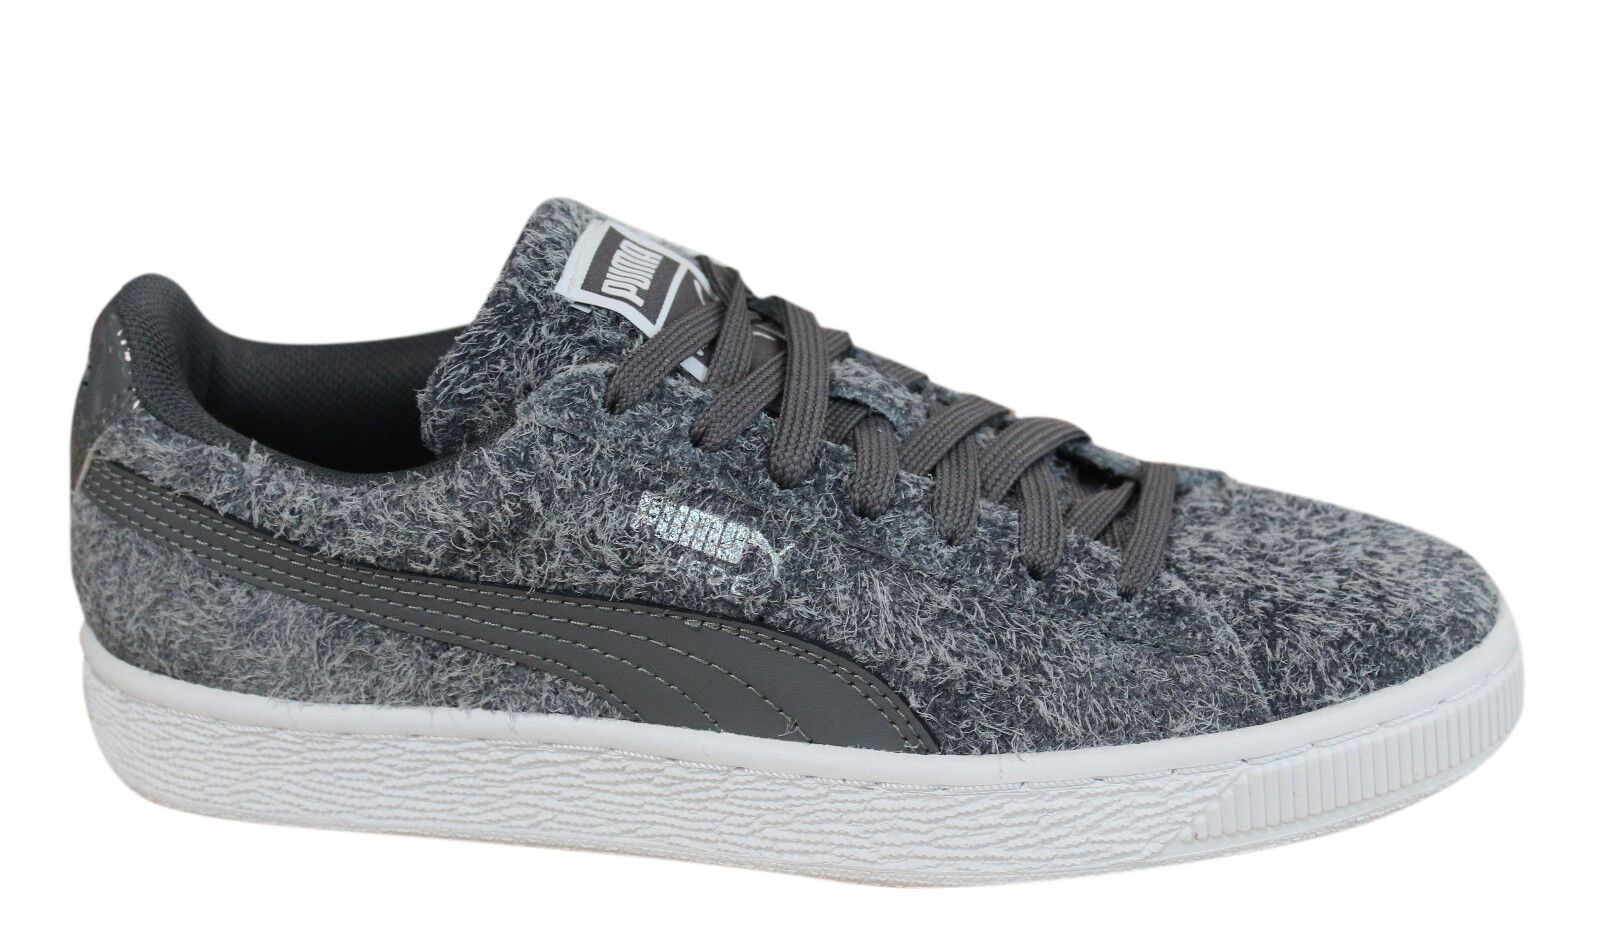 Details zu Puma Suede Elemental Womens Trainers Lace Up Shoes Grey Leather 361112 01 P3F